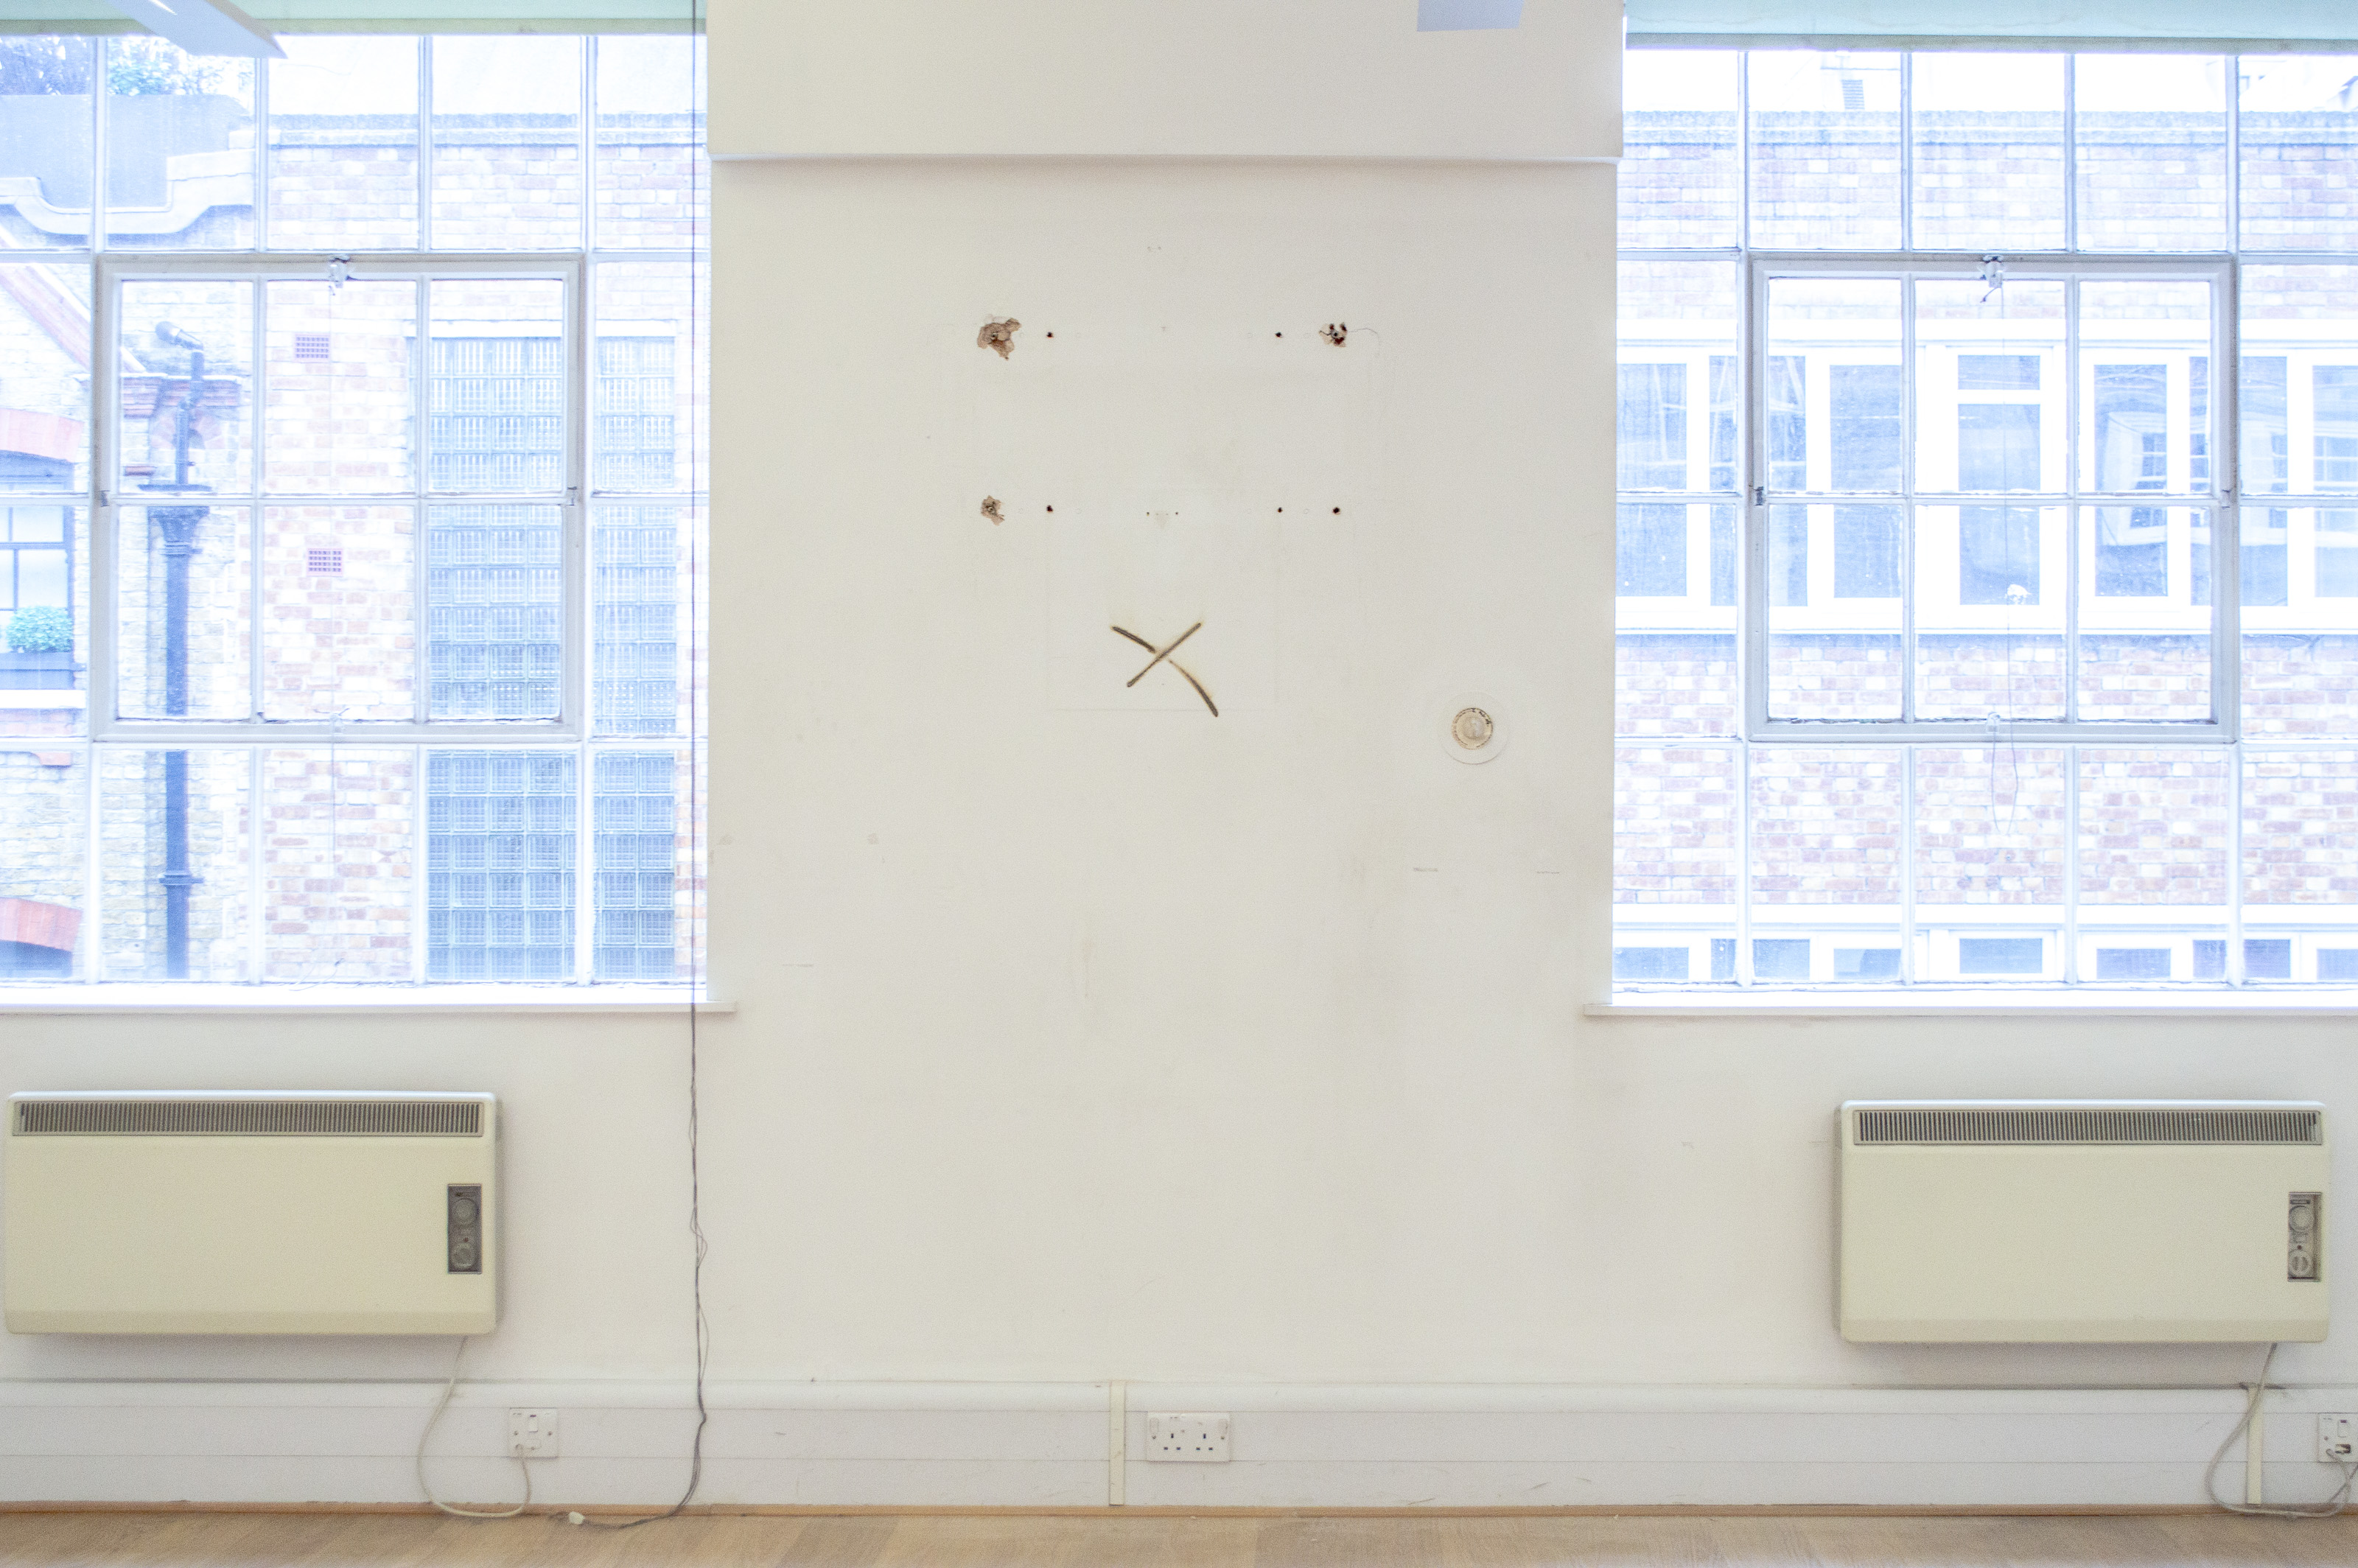 """Johanna Flato, """"X Asset: Imprint"""" wall imprint installation view, """"Viewing Room"""" curated by Bob Bicknell-Knight, Harlesden High Street, London, 2019 (photo courtesy of Bob Bicknell-Knight)"""